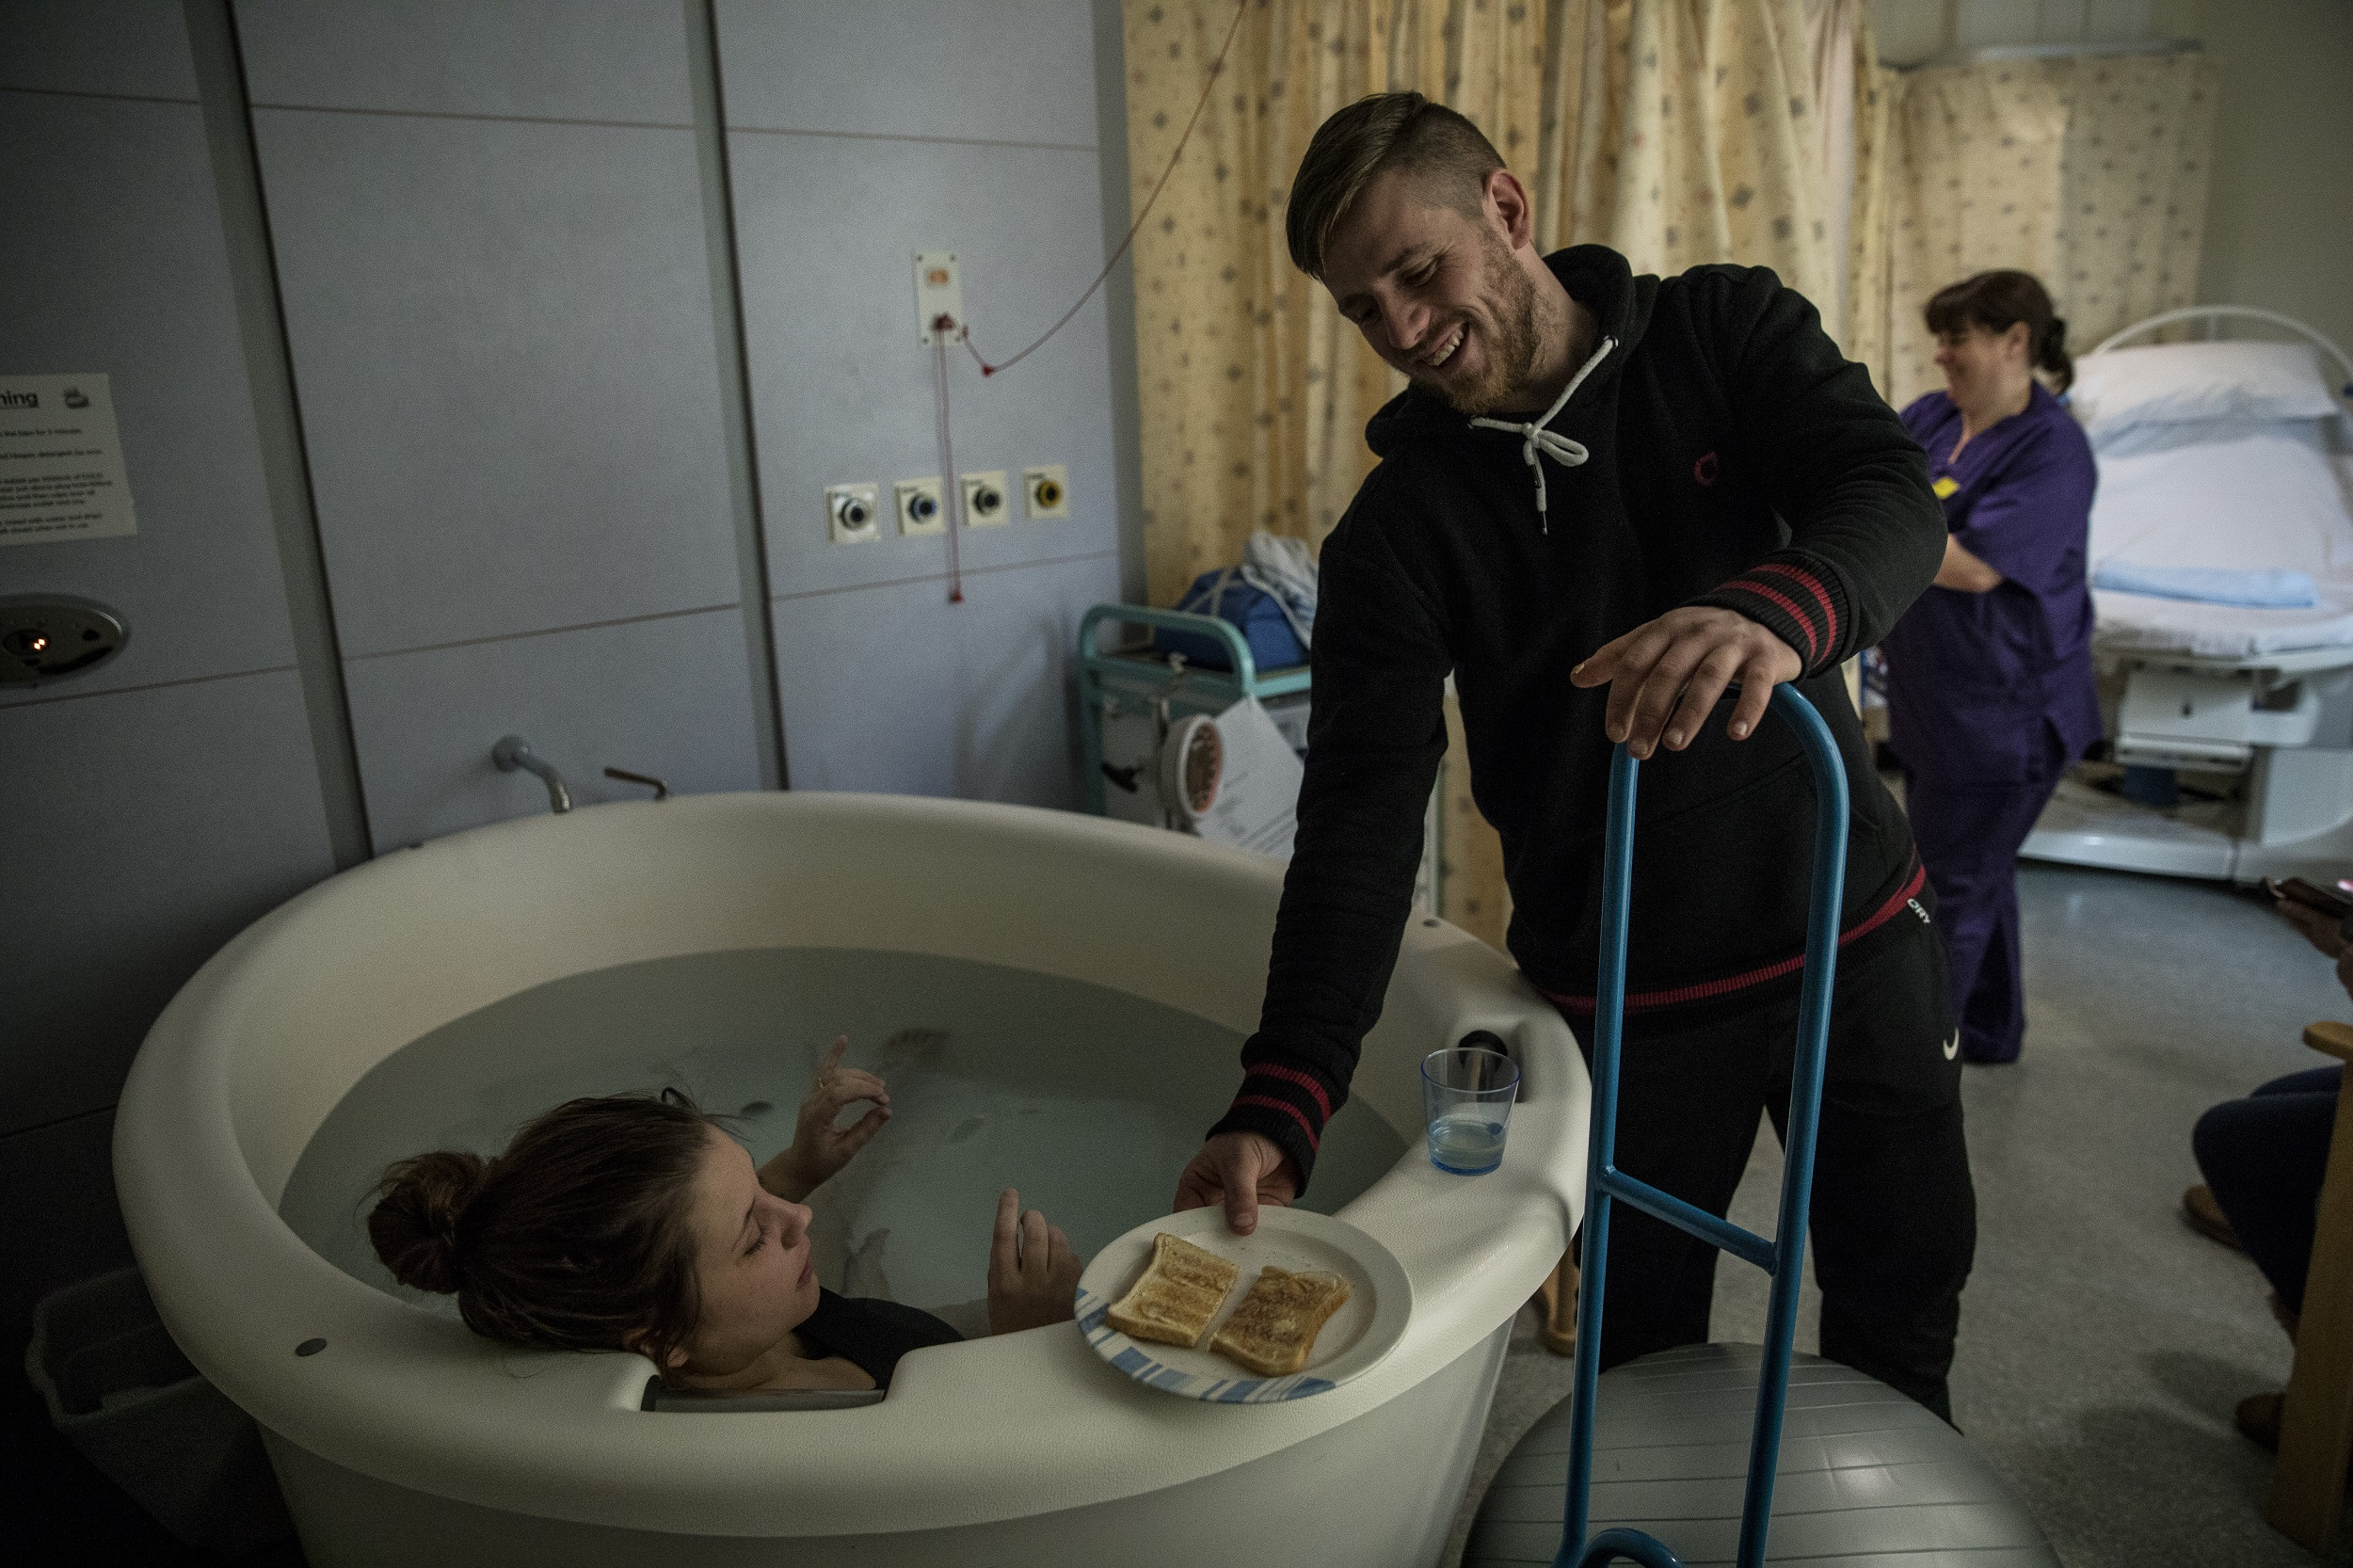 Damien Armes gives his wife Tamzin a piece of toast while she's in labour in a birthing pool, in the maternity ward of the Royal Devon and Exeter Hospital, in Exeter, Devon, England, 28 February 2018.